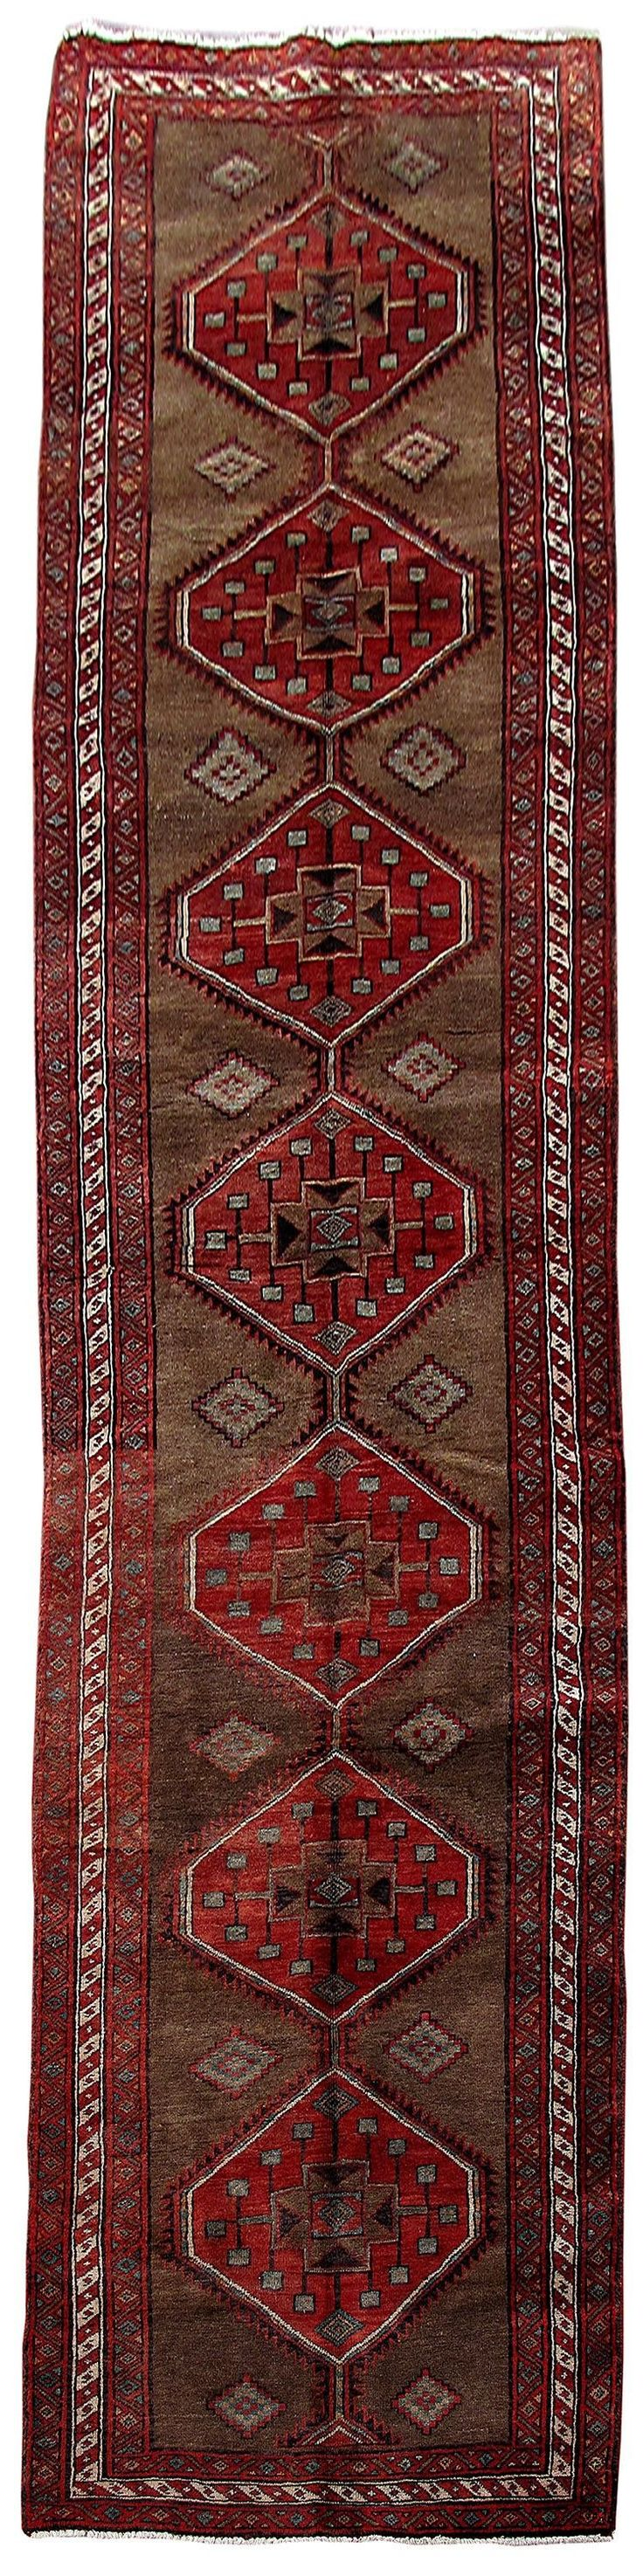 Diy catio plan the sanctuary catio plans with 6x8 and 8x10 options - Persian Ardebil Carpet Cheap Rugs Online Handmade Rug 4x15 Runner